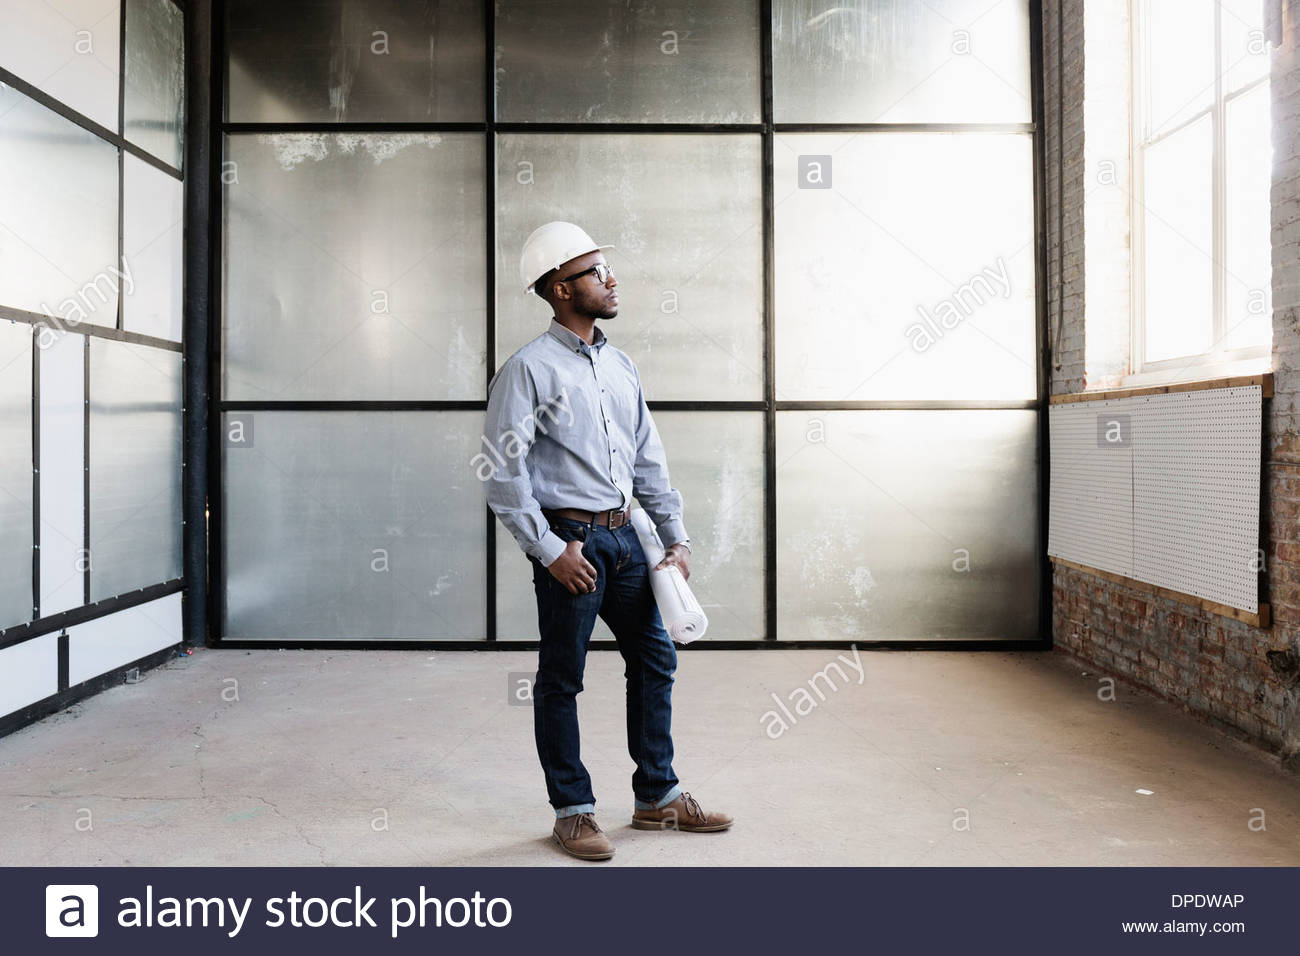 Portrait of young male interior designer in empty room - Stock Image